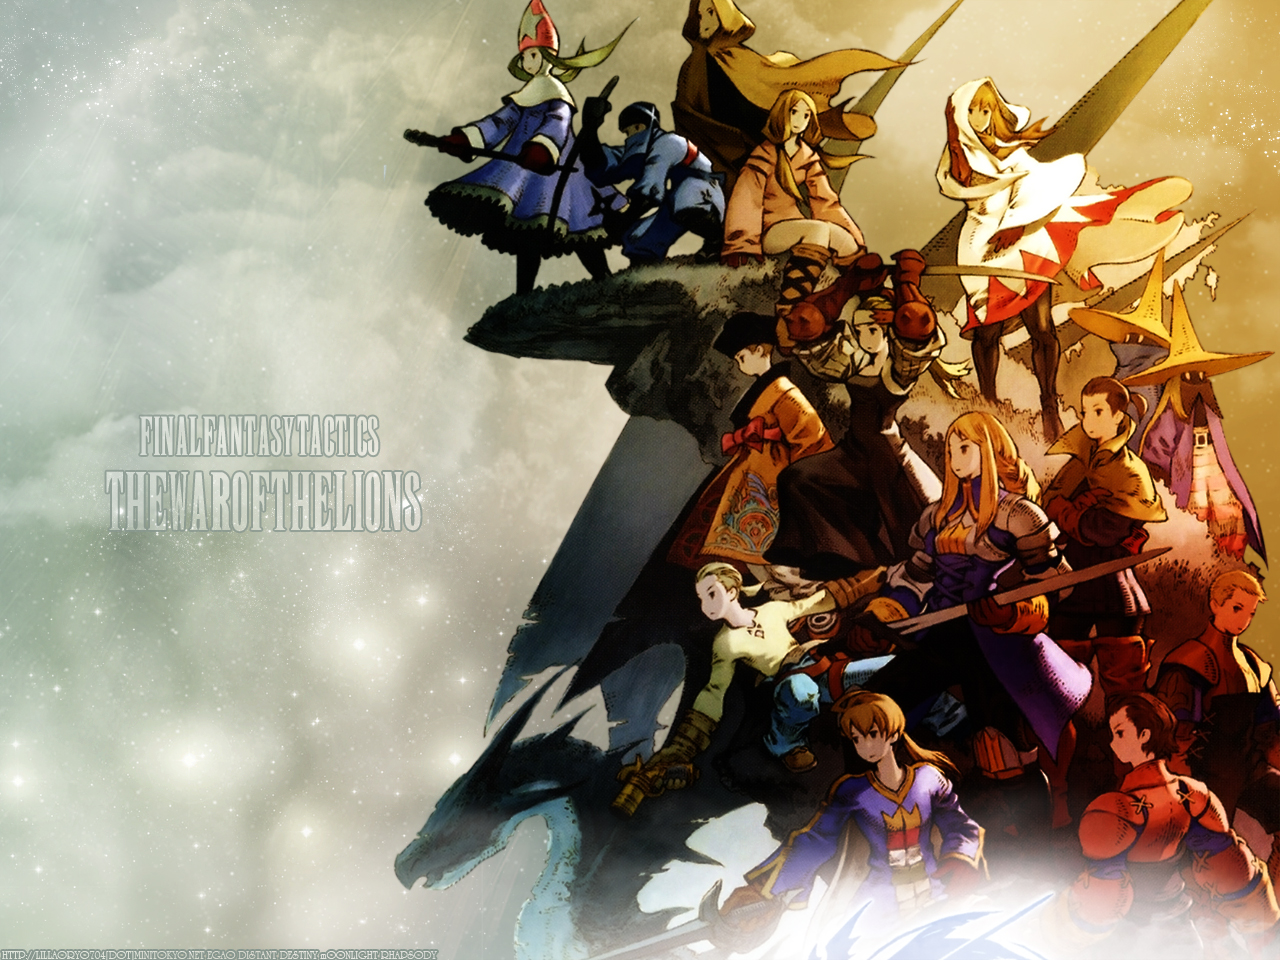 Final Fantasy Tactics Wallpaper [ The War The Lions